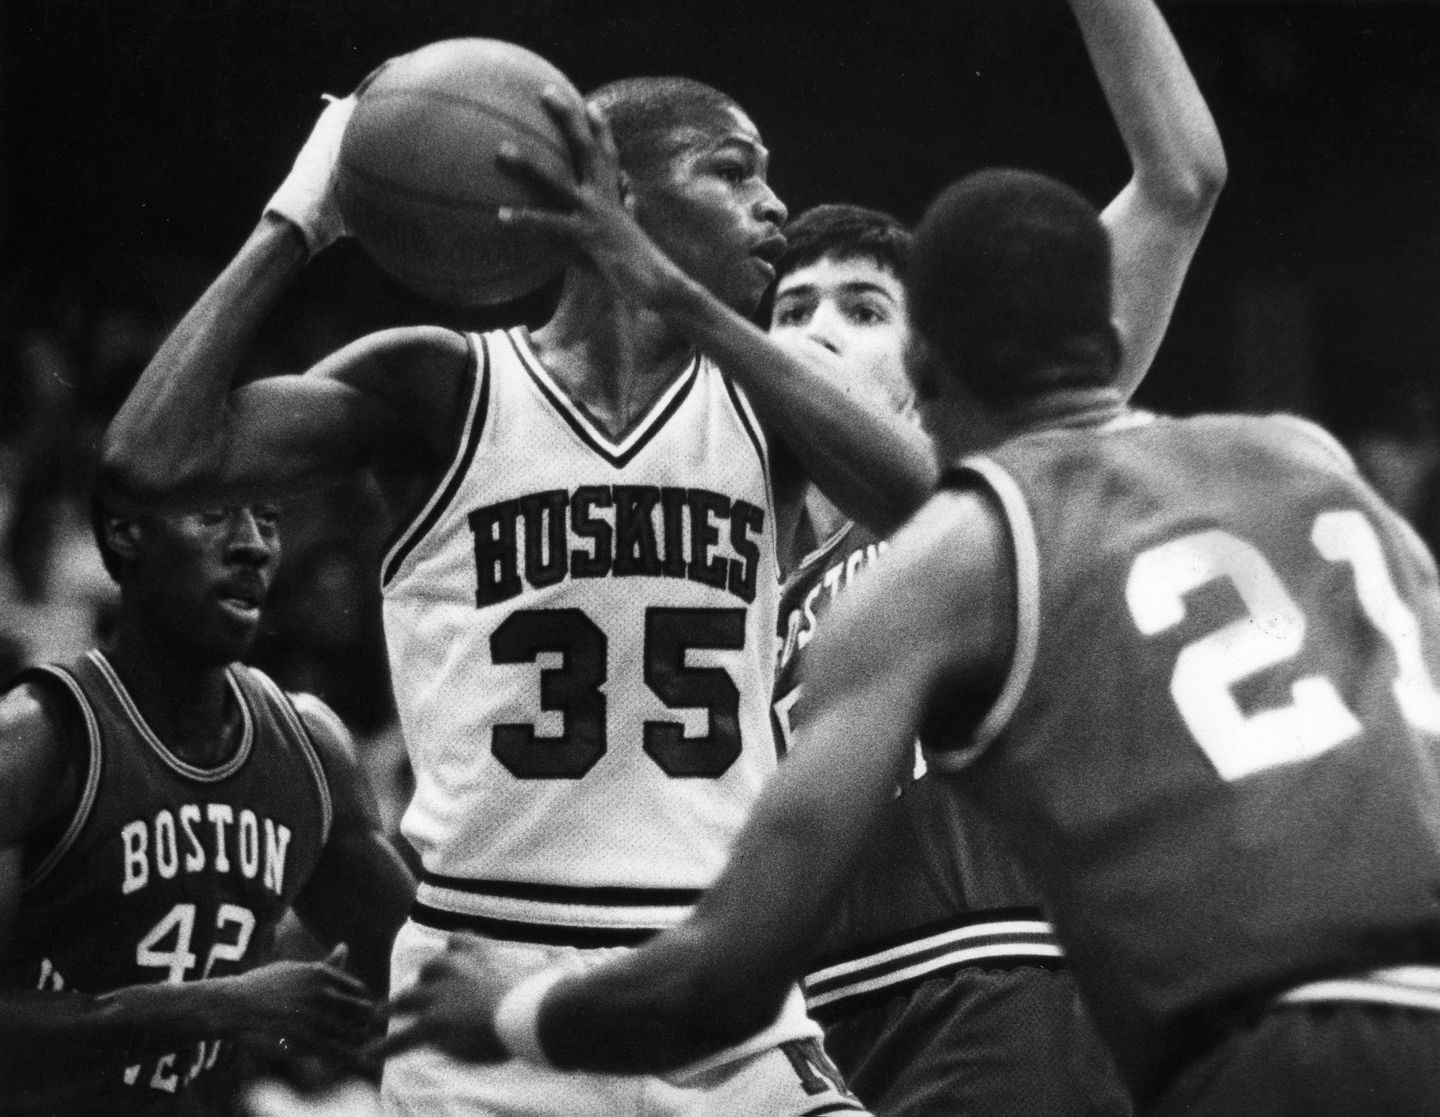 Reggie Lewis played at Northeastern from 1983 to 1987.